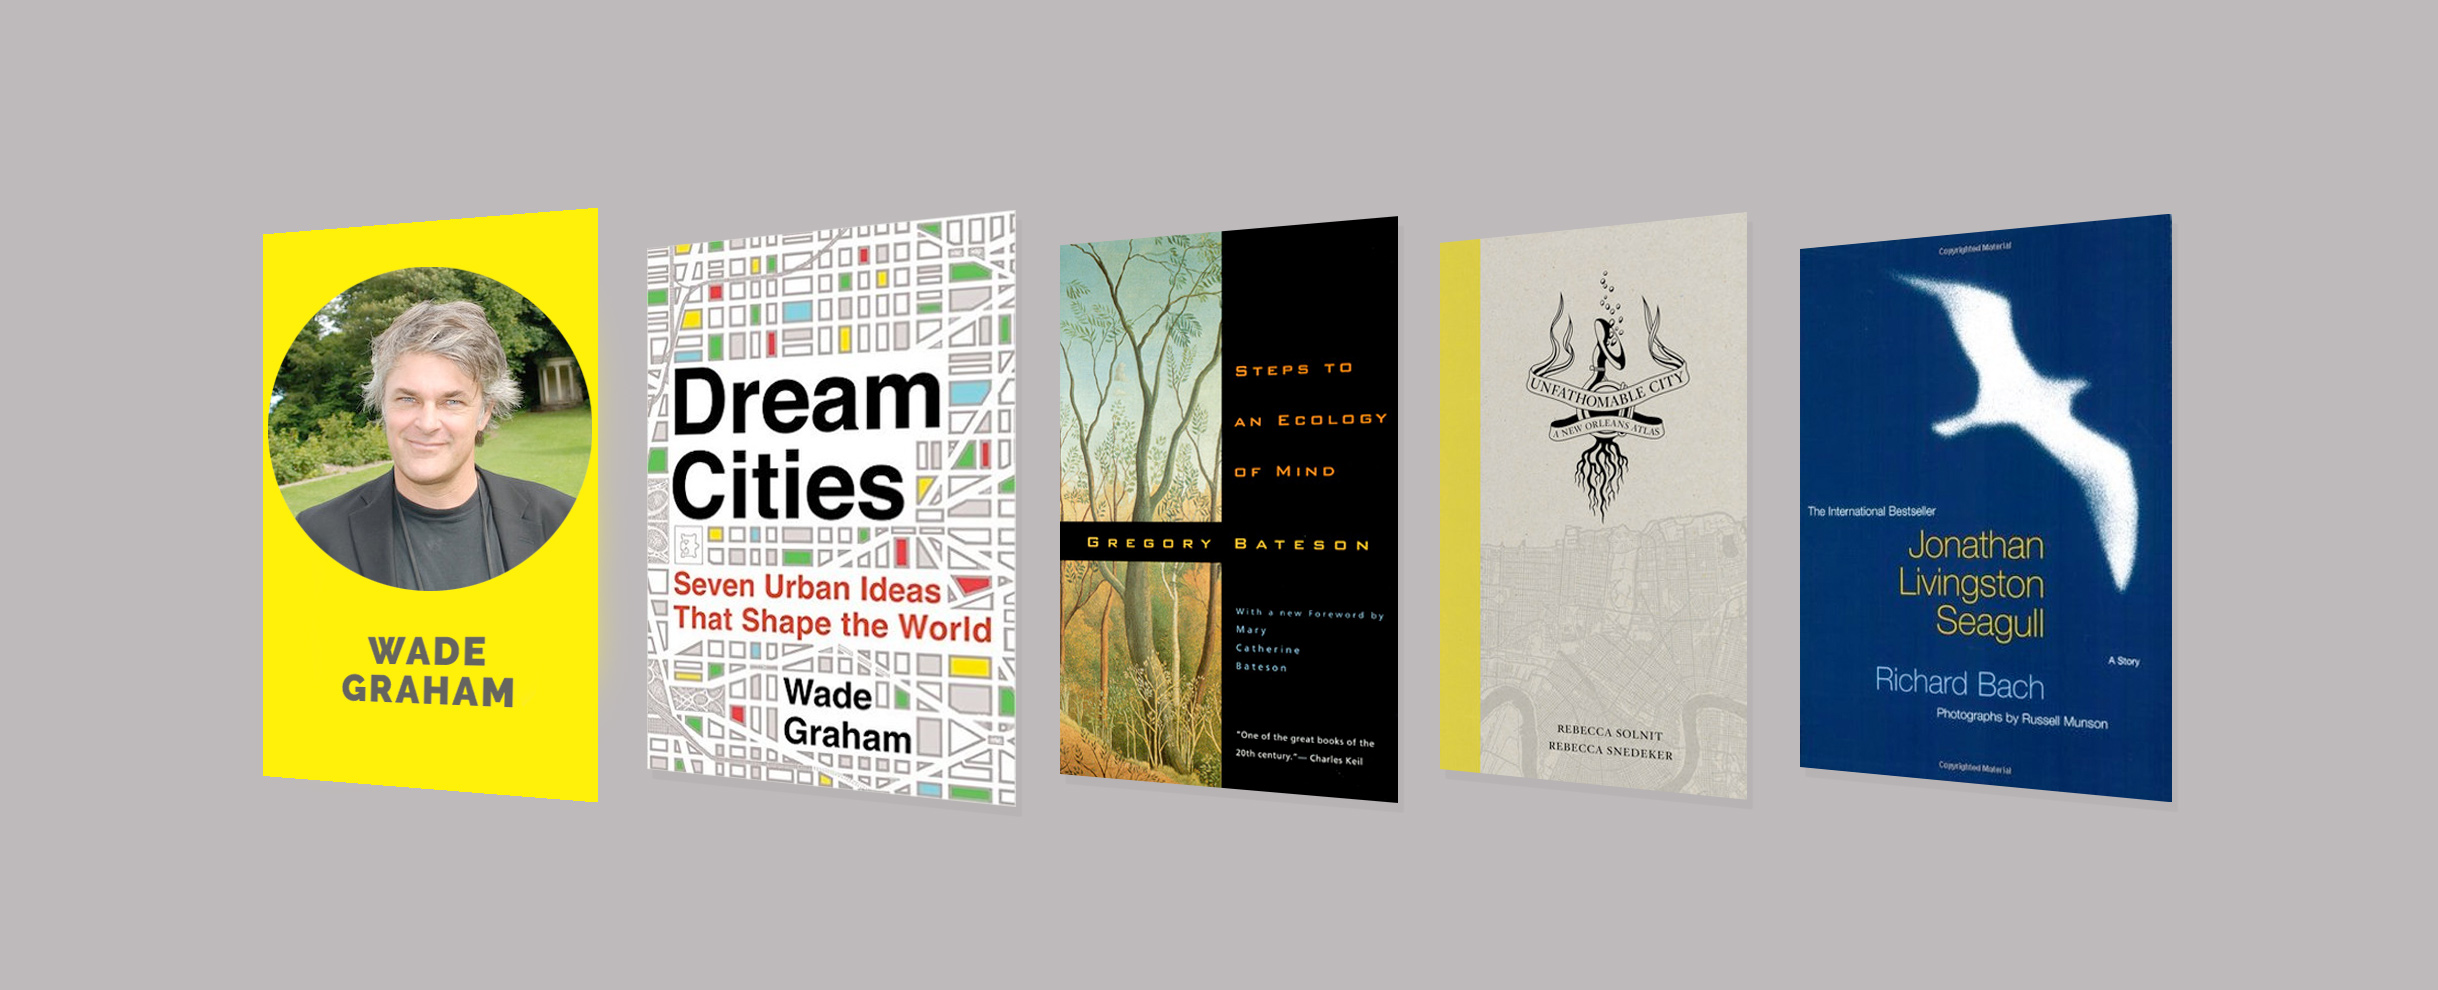 Interview with Wade Graham, author of Dream Cities: Seven Urban Ideas That Shape the World